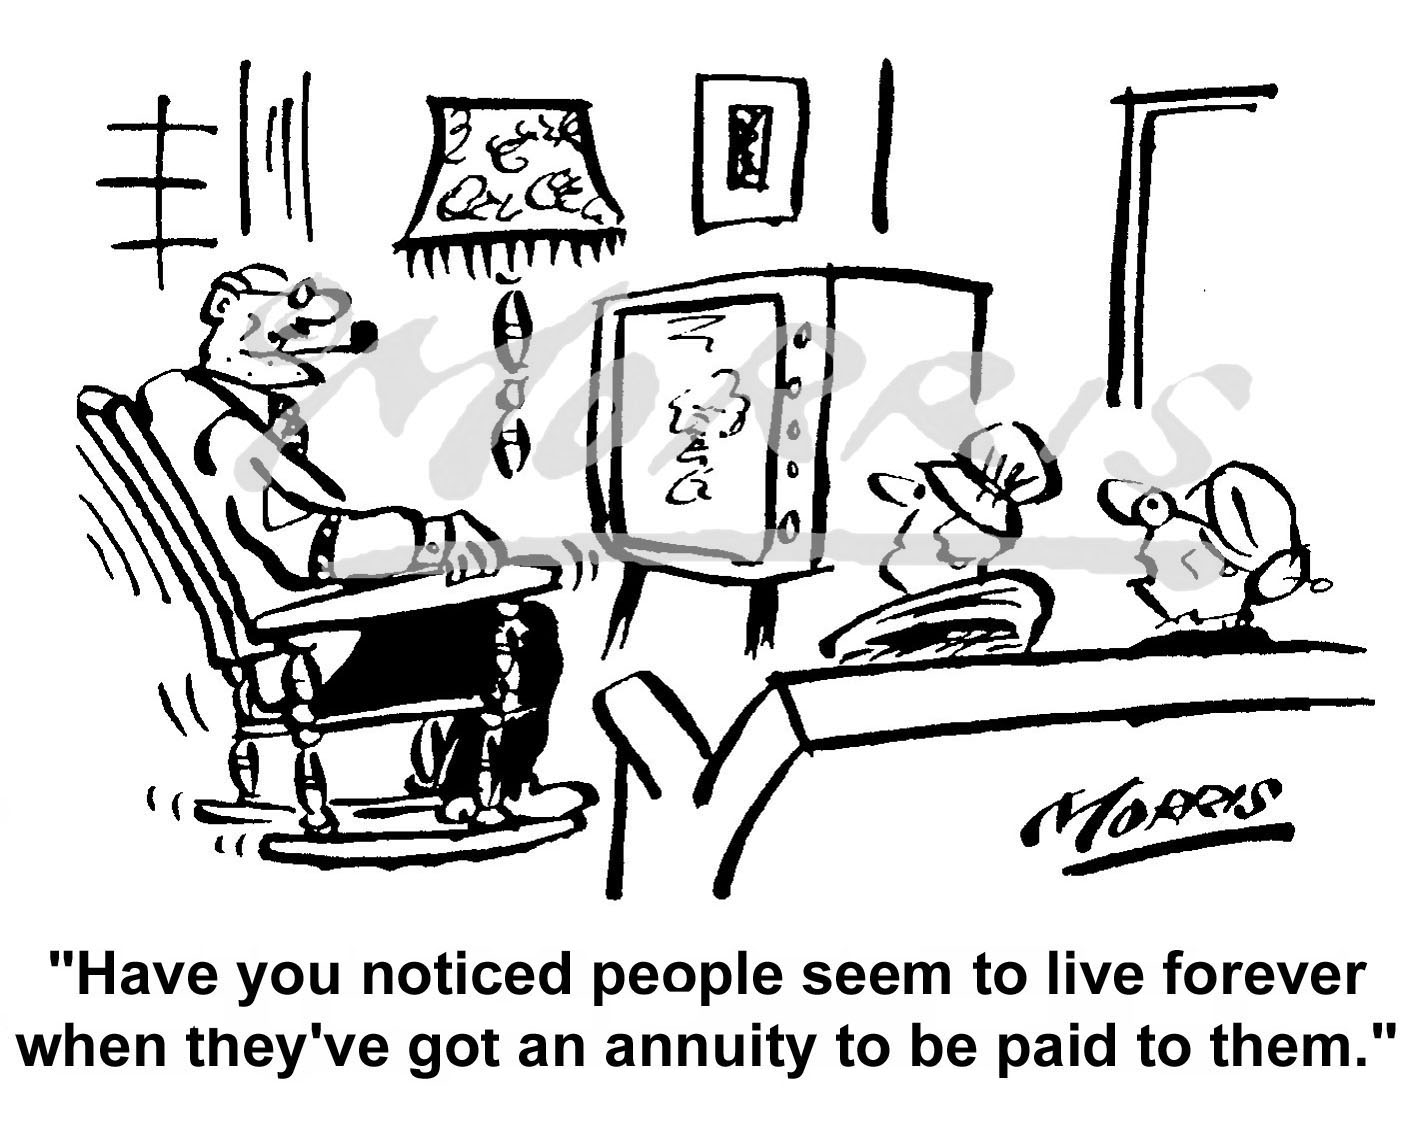 Insurance cartoon, Insurance comic, Annuity cartoon – Ref: 0124bw